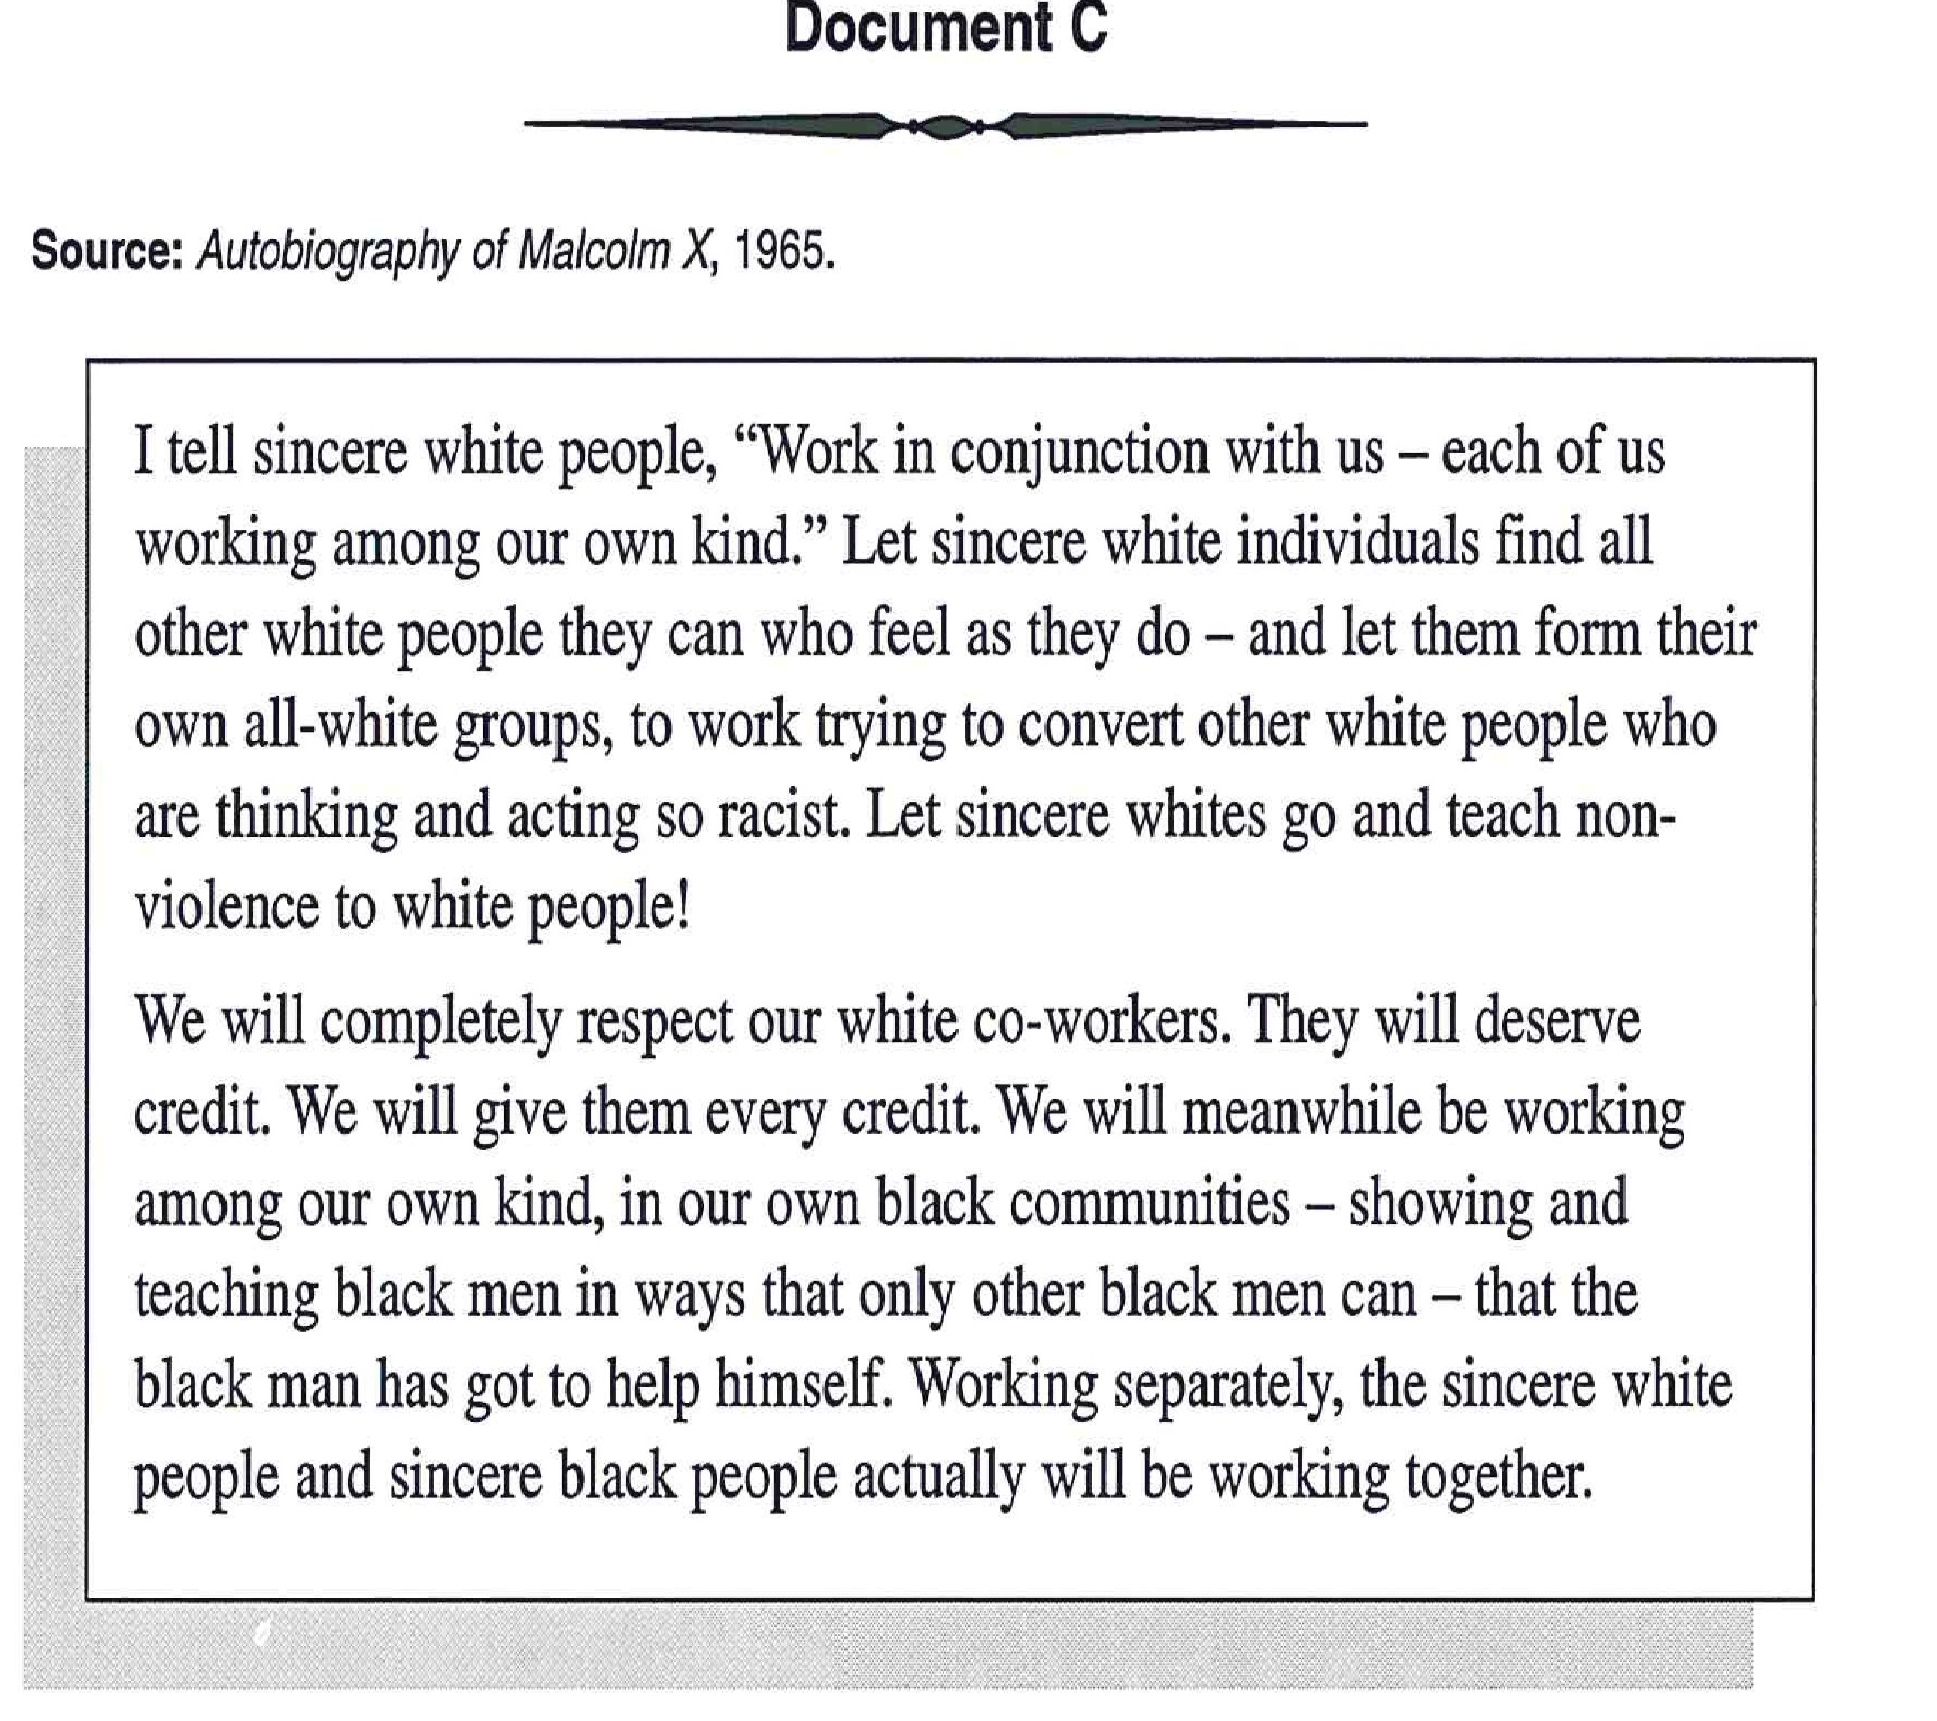 007 Mlk Essay Best Conclusion Writing Prompts Contest 2017 Full